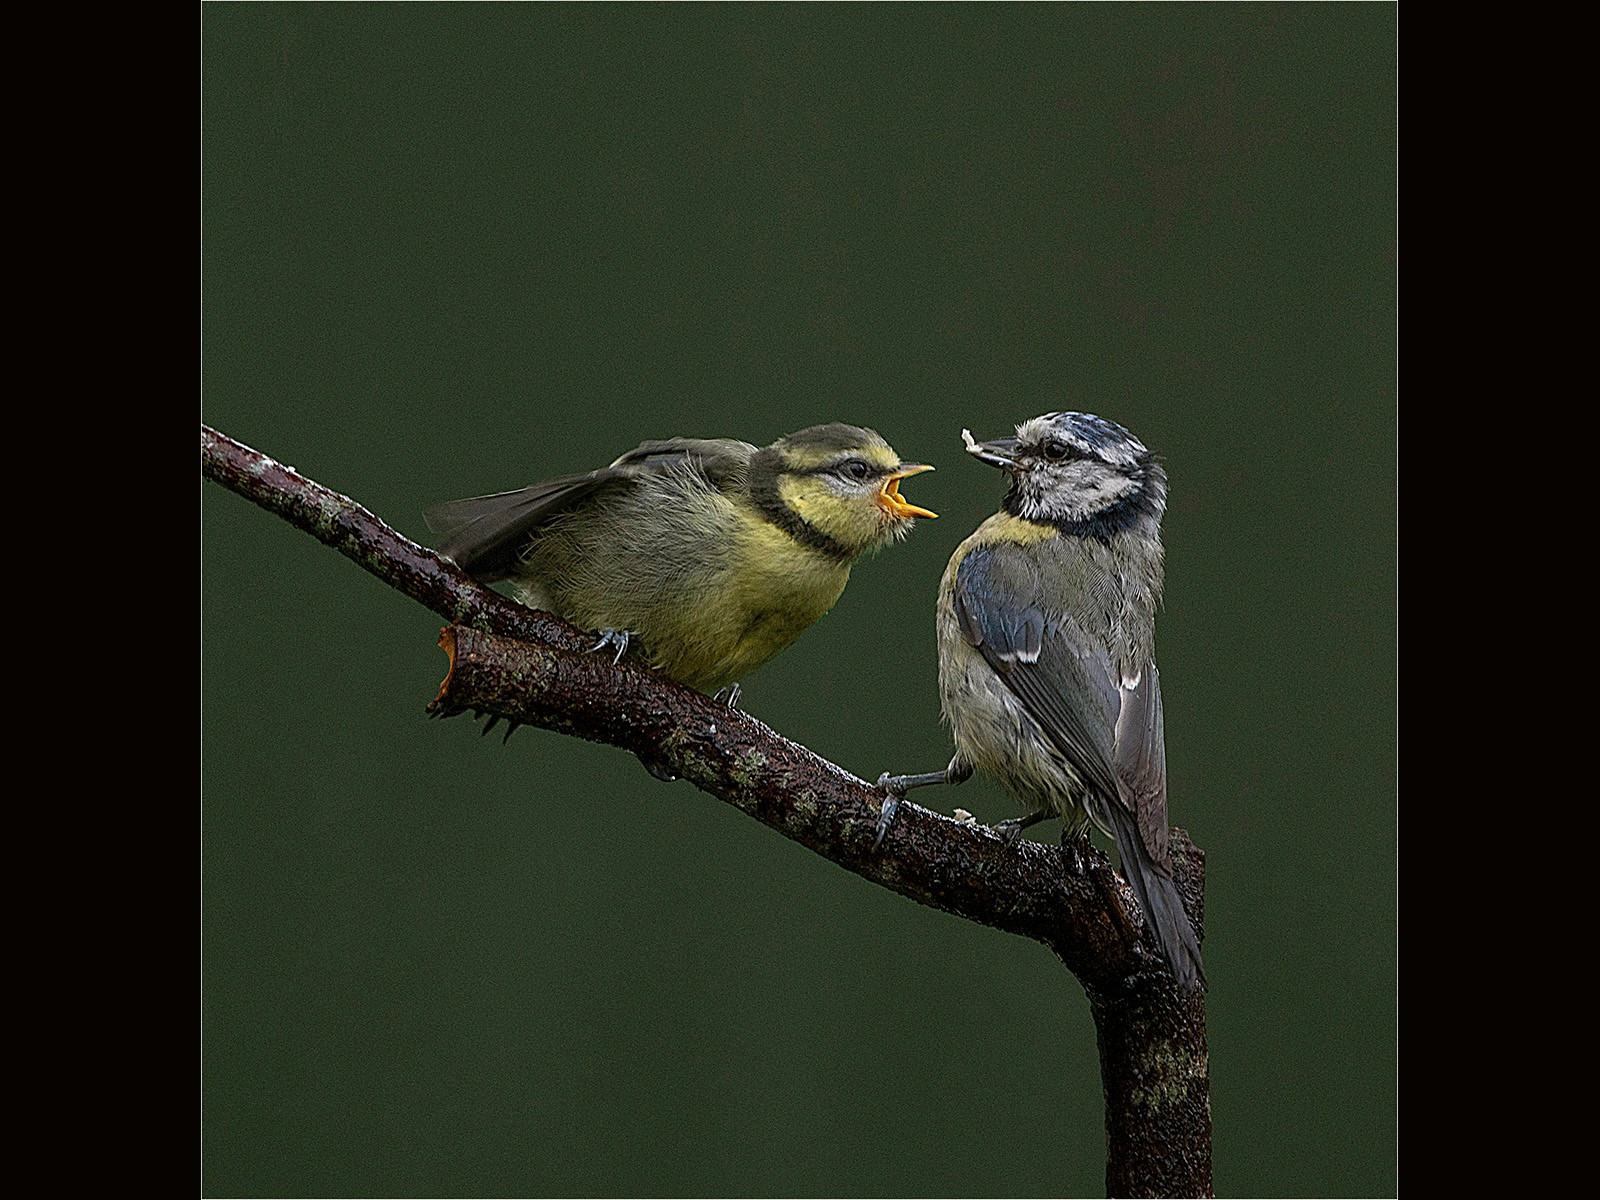 Female Blue Tit Feeding Young